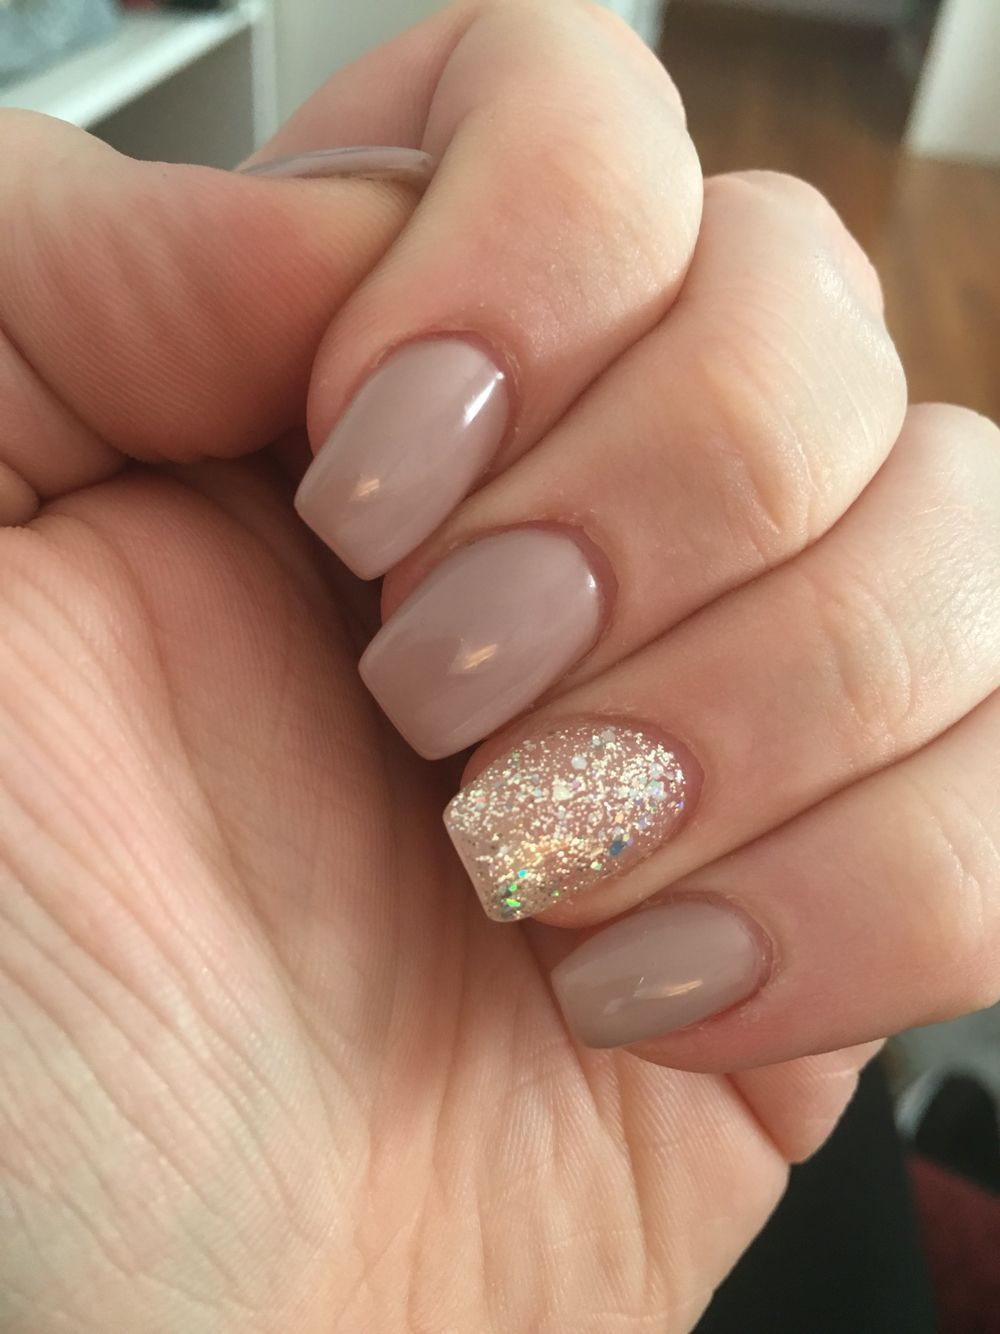 Classy Tan Nude Acrylic Nails With Silver Accent Nail So Pretty